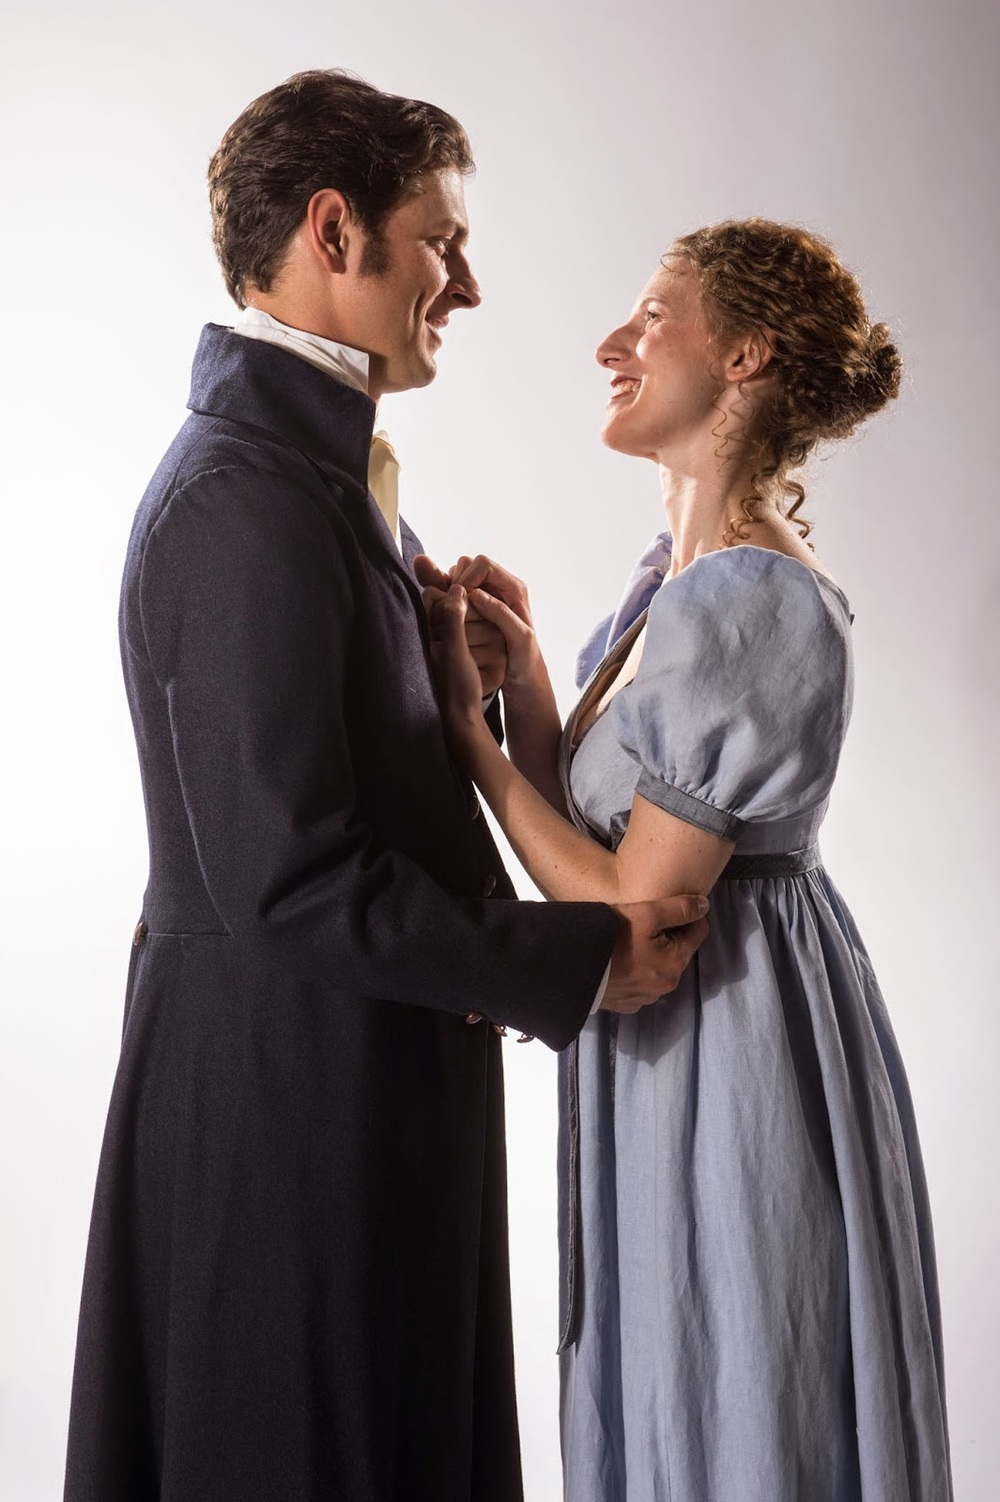 Mattfeld as Edward Ferrars, Bissell as Elinor Dashwood. Photo by Karl Hugh